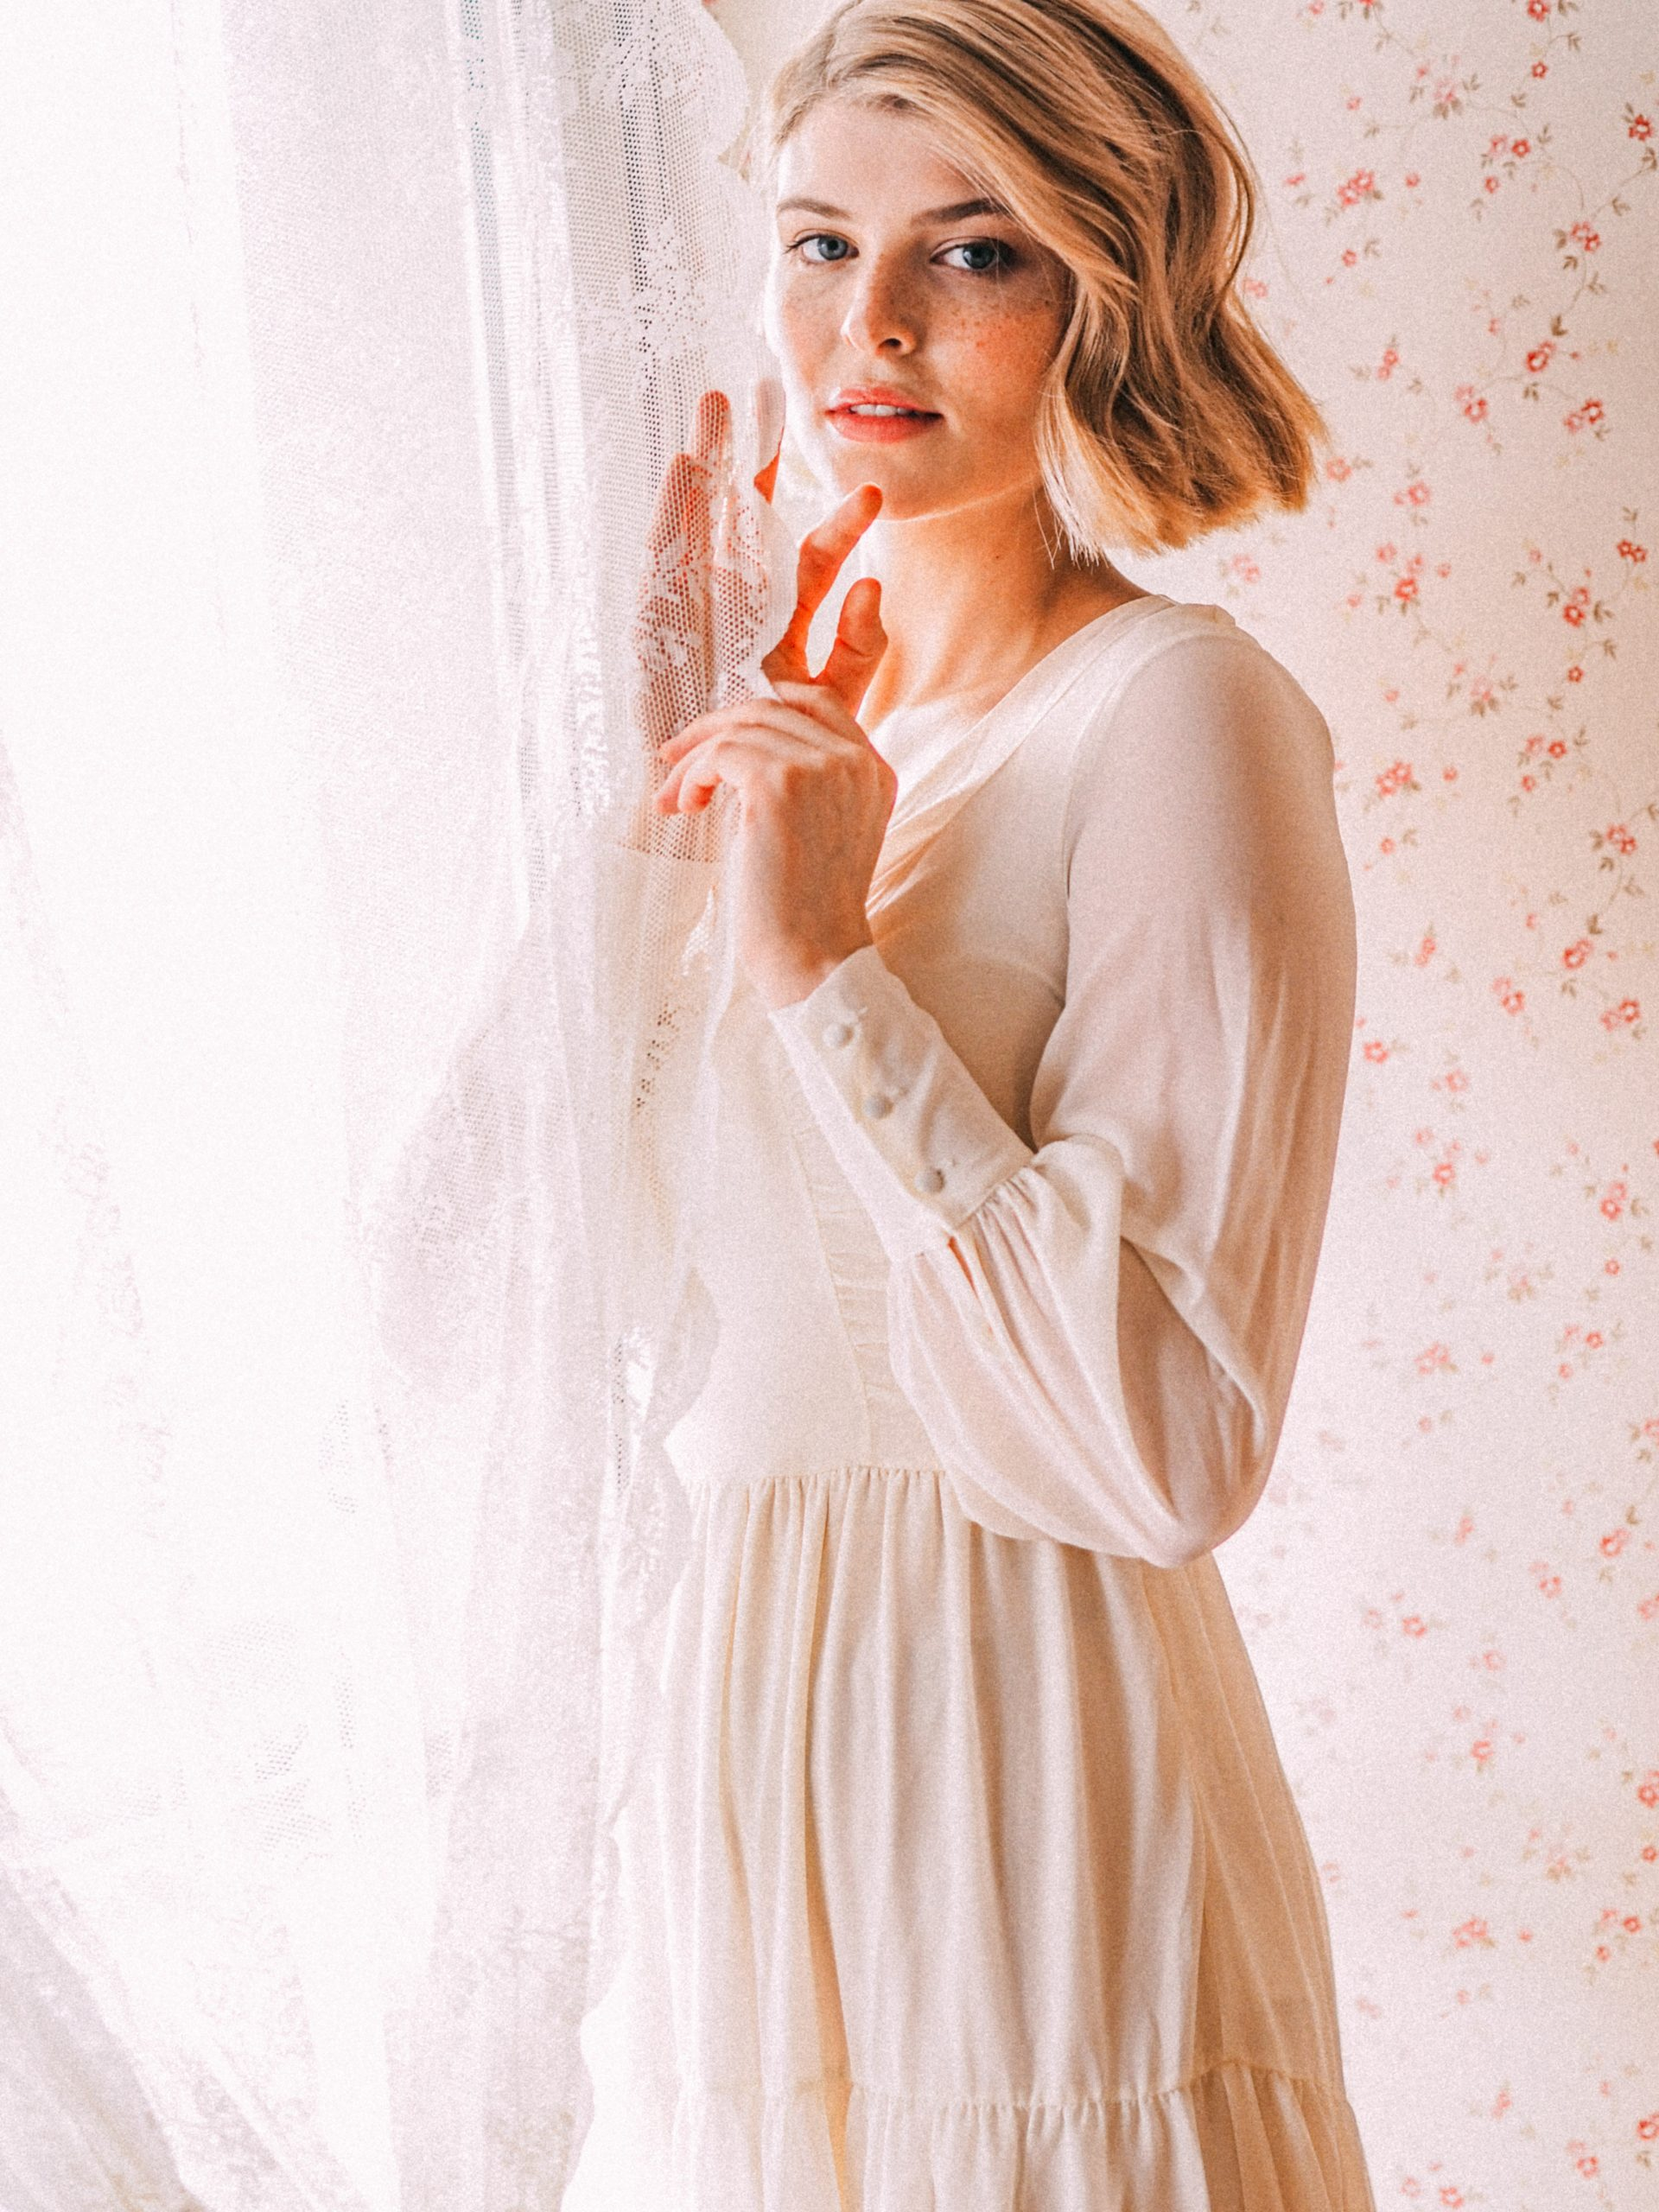 Shooting Styling – Styling by Jessi Geib